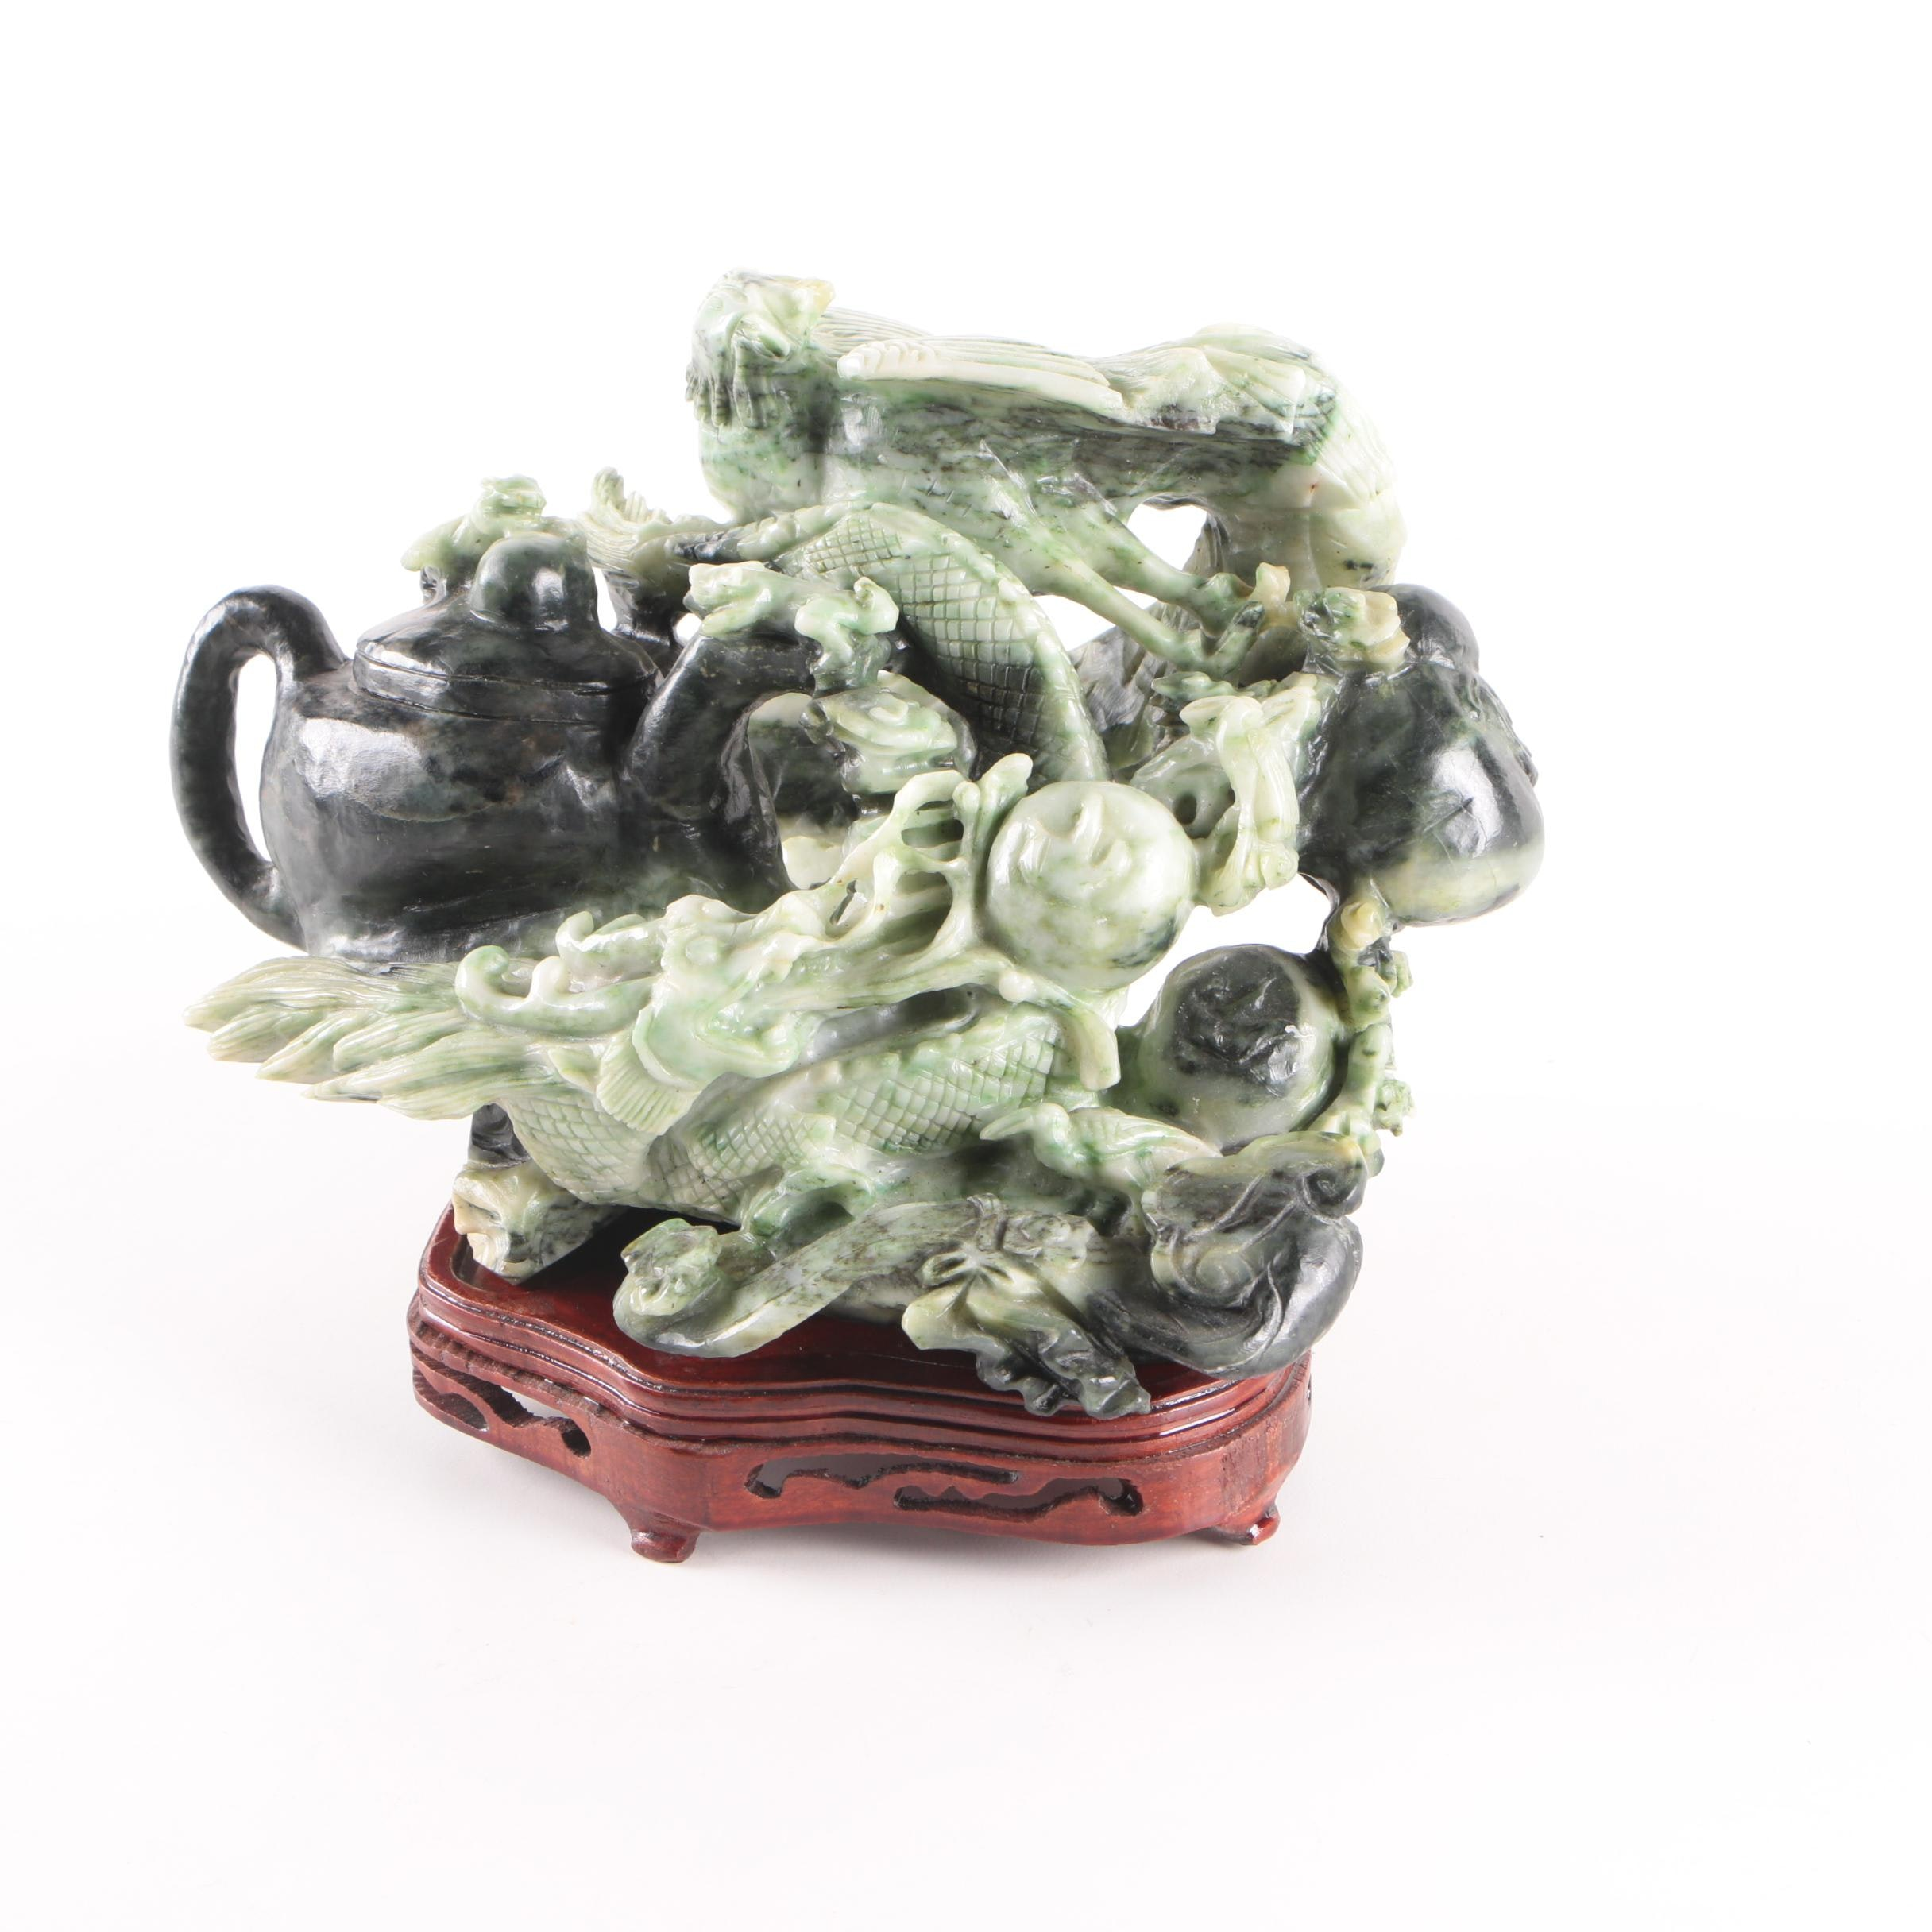 Chinese Serpentine Carving of Dragons With A Teapot On Wood Base